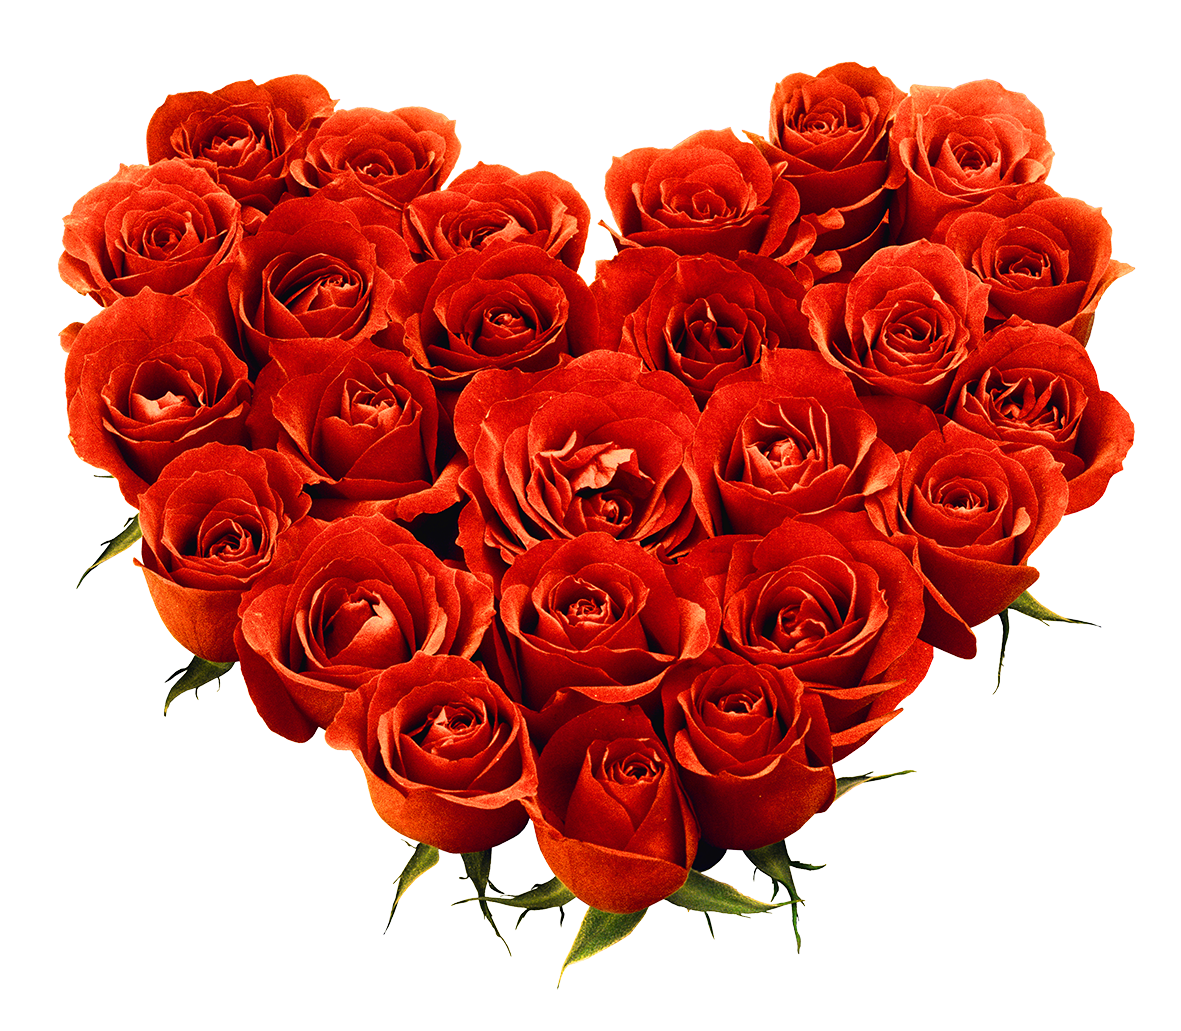 Bouquet of roses png. Image free picture download